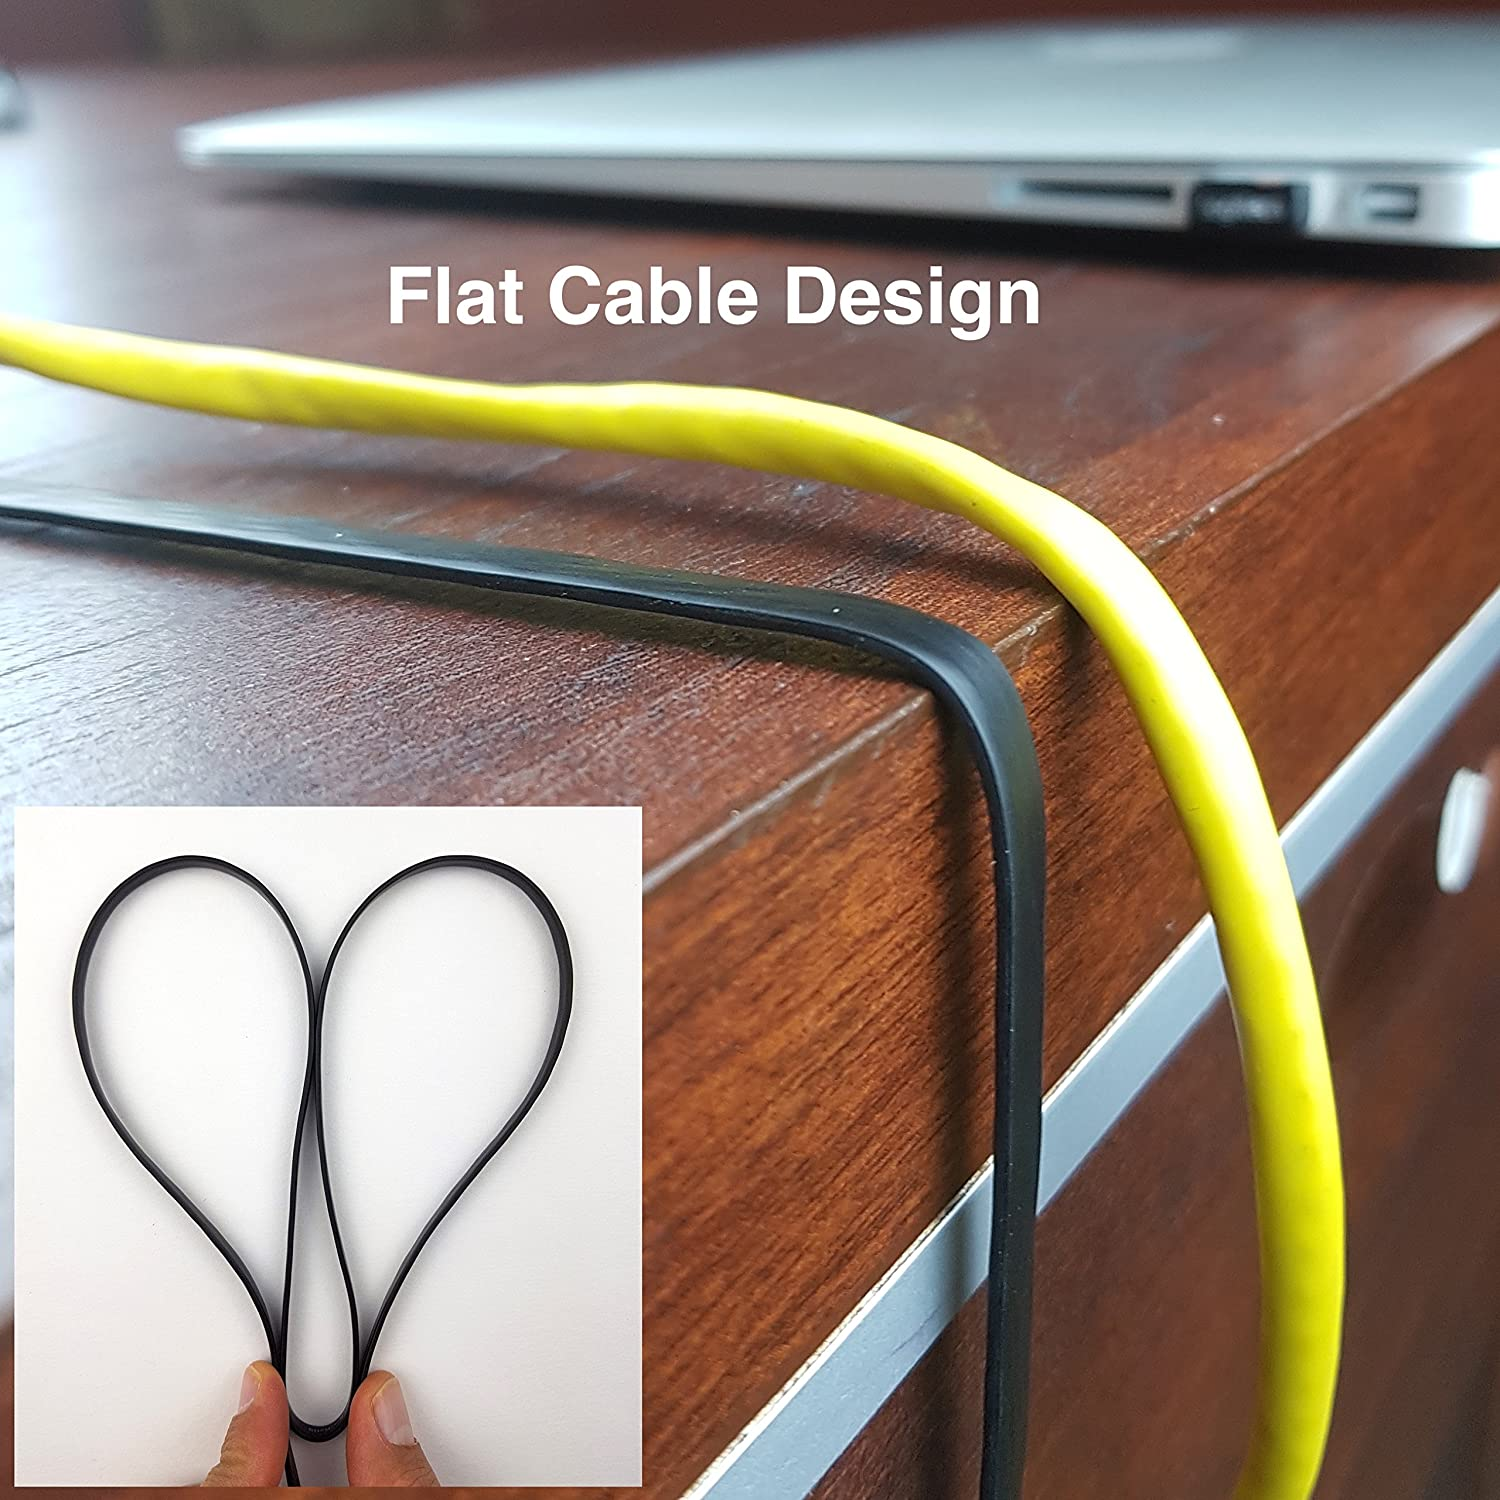 CAT 6 ETHERNET CABLE Cat6 Ethernet Patch Cable with Snagless RJ45 Connectors 50ft Black Flat Internet Network Cables CAT6 Computer LAN Cable at Cat5e Price but Higher Bandwidth